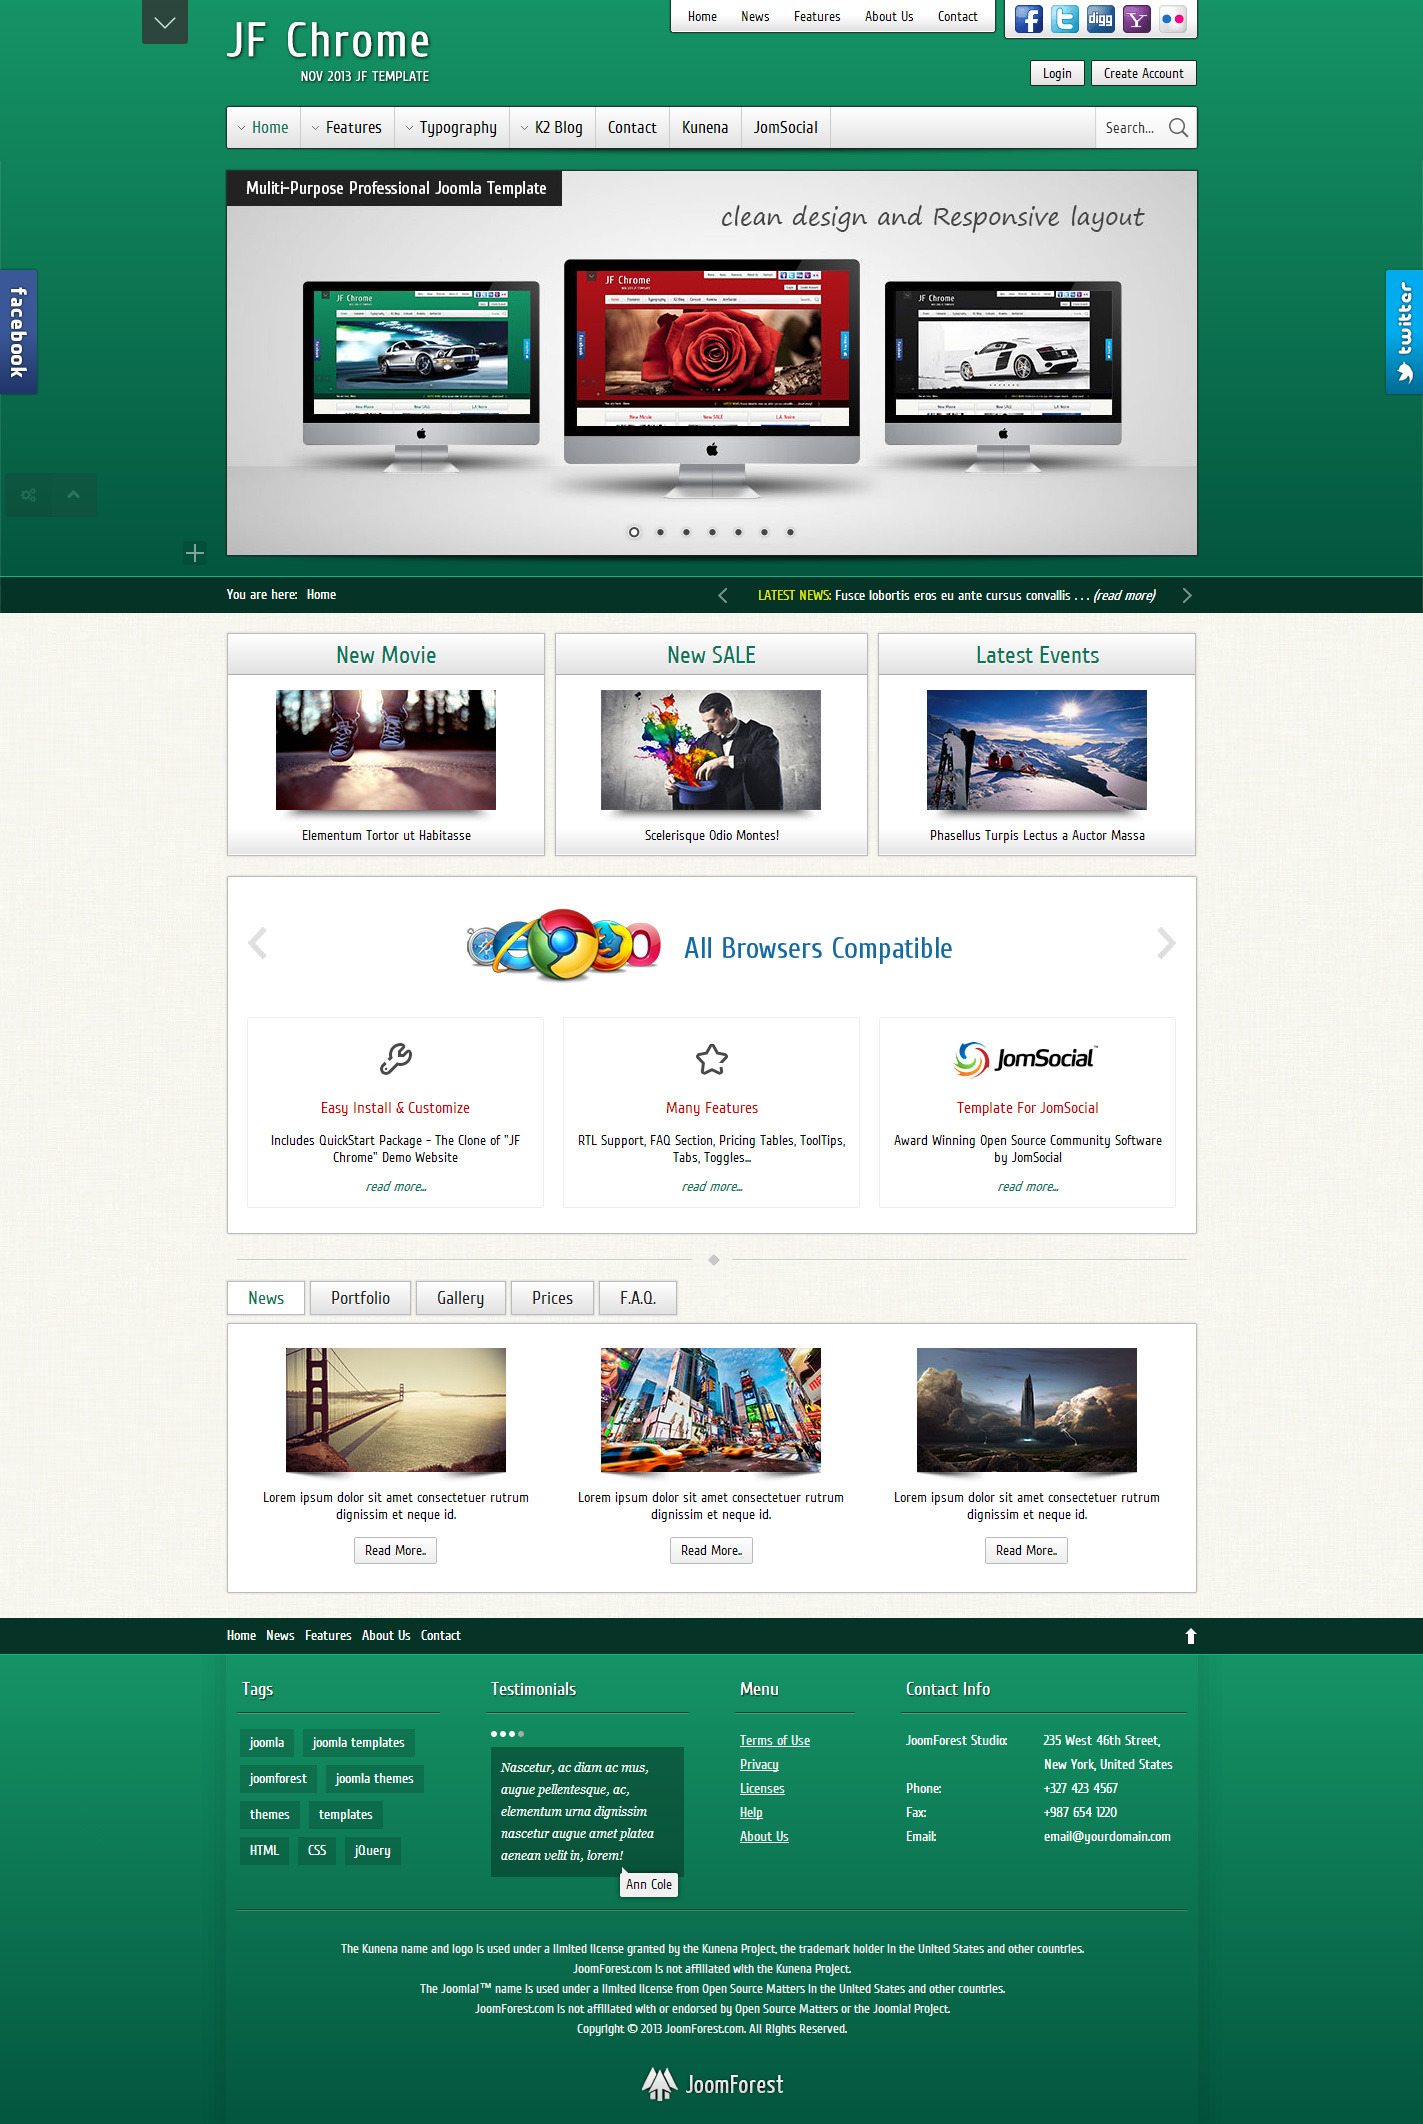 JF Chrome - Joomla Kunena JomSocial Template - JF Chrome - Green Skin